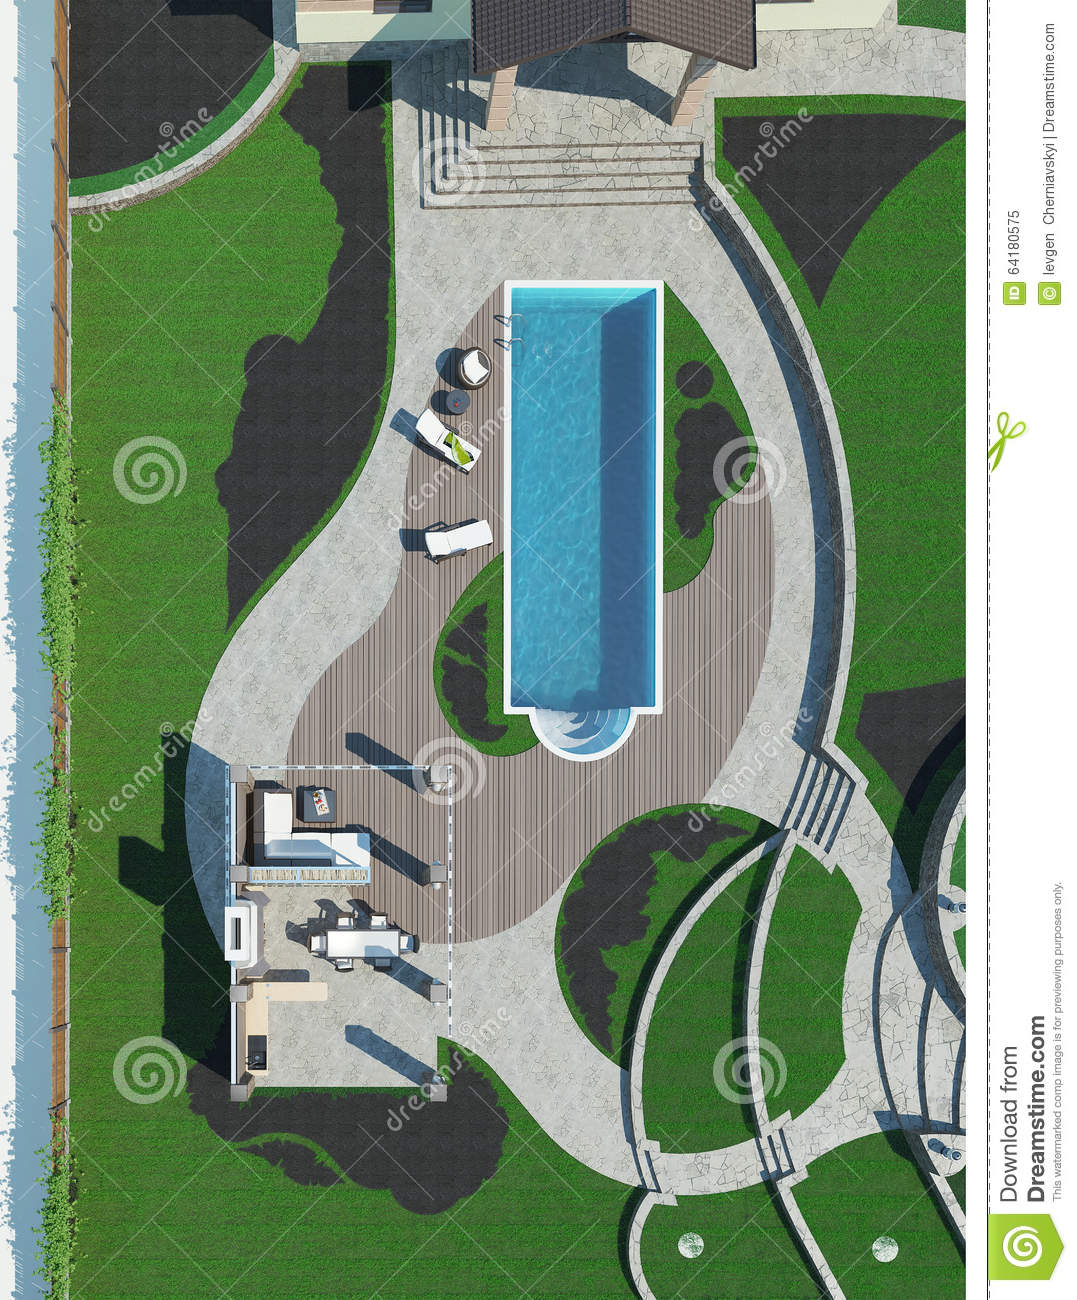 Site Plan Example: Poolside Master Plan, 3D Render Stock Illustration